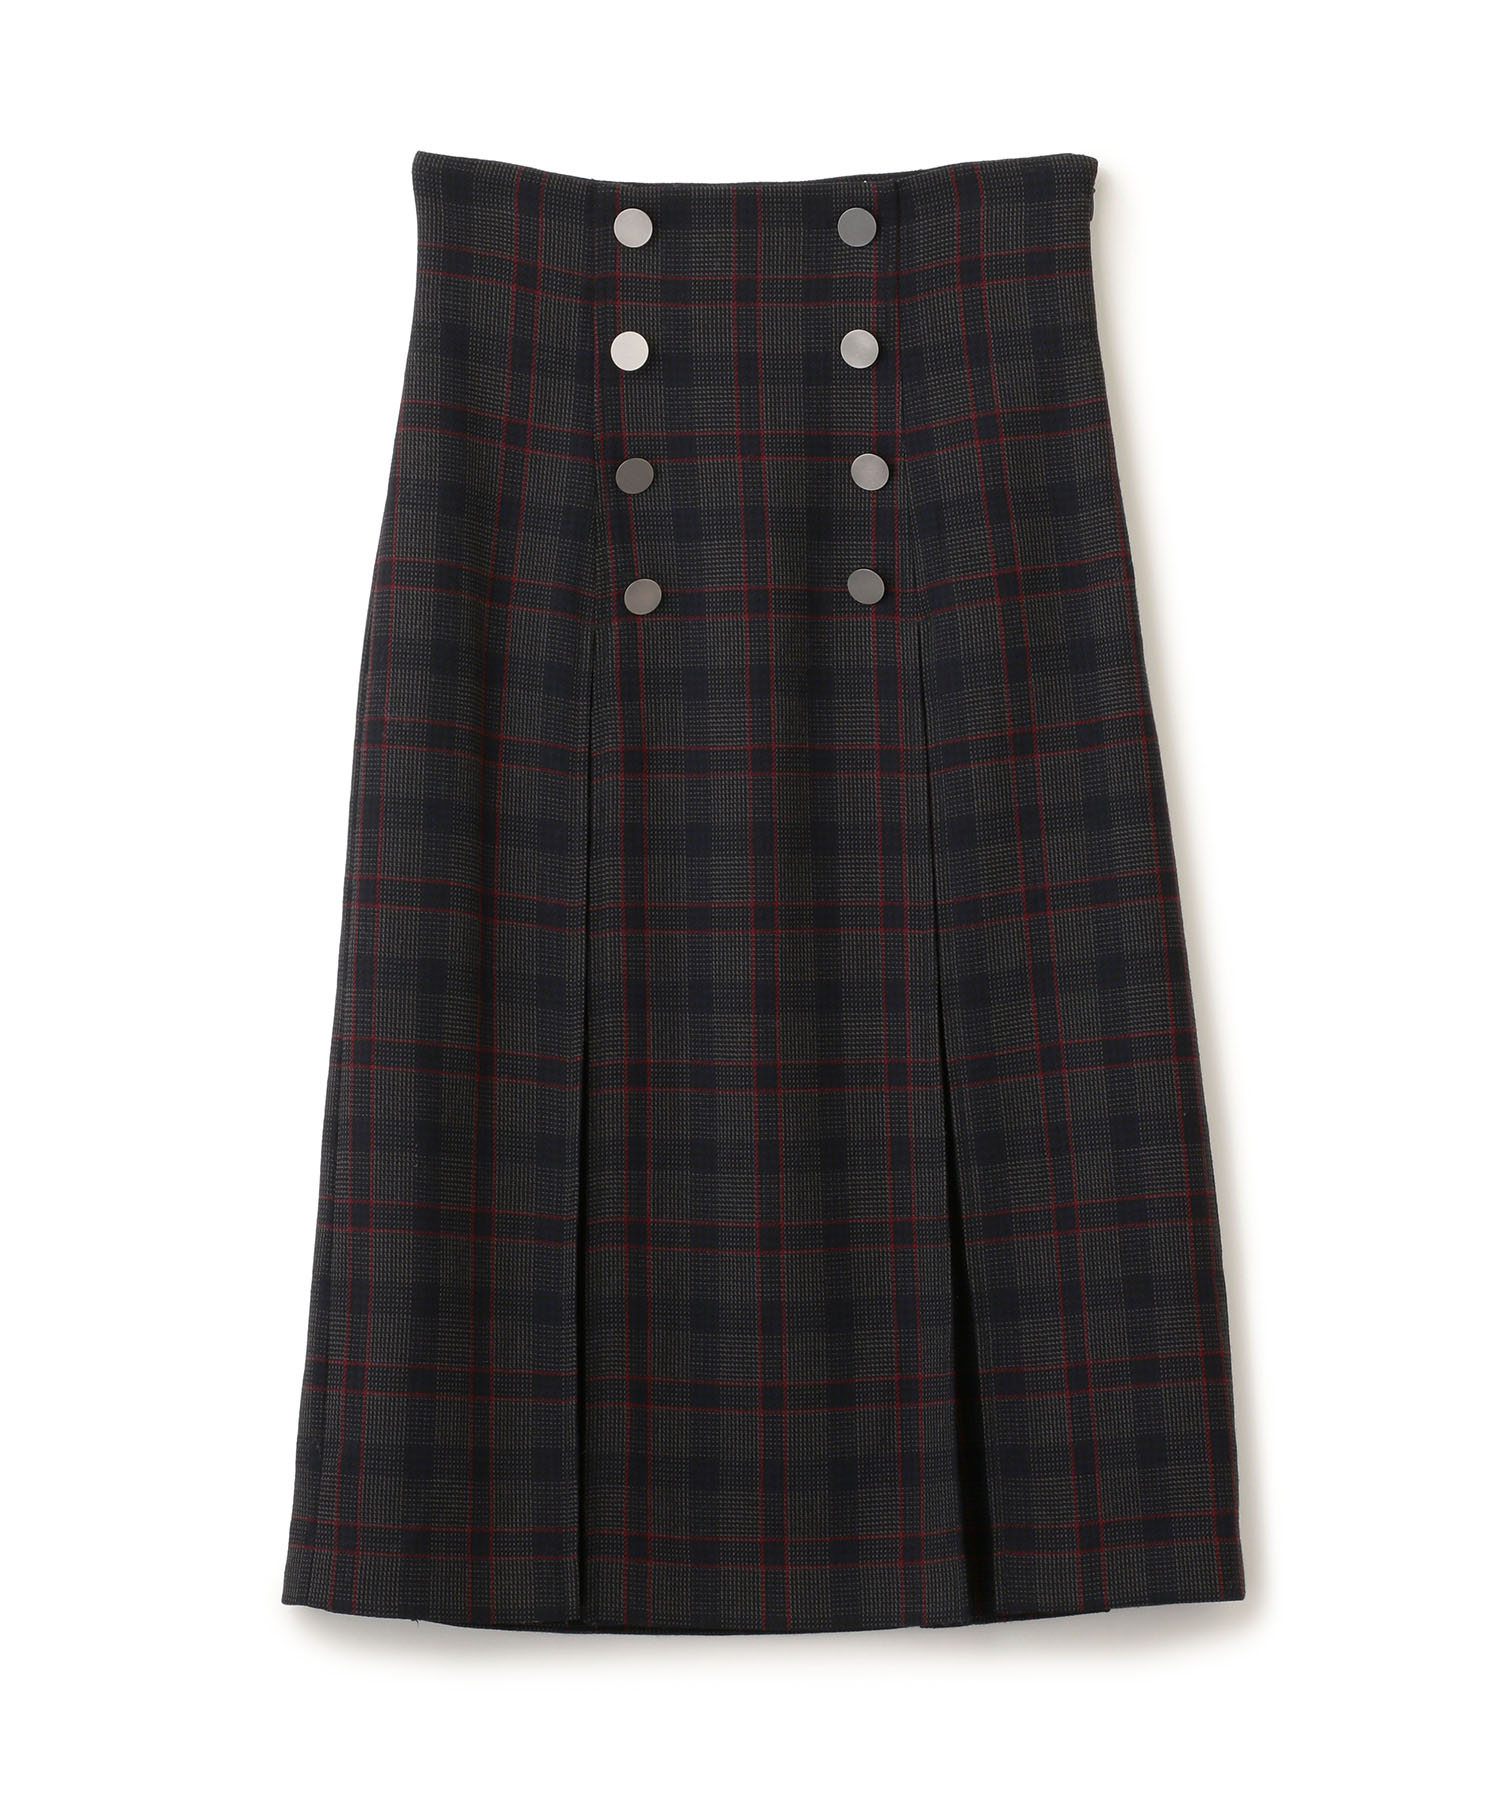 Gun Club Box Pleats Skirt